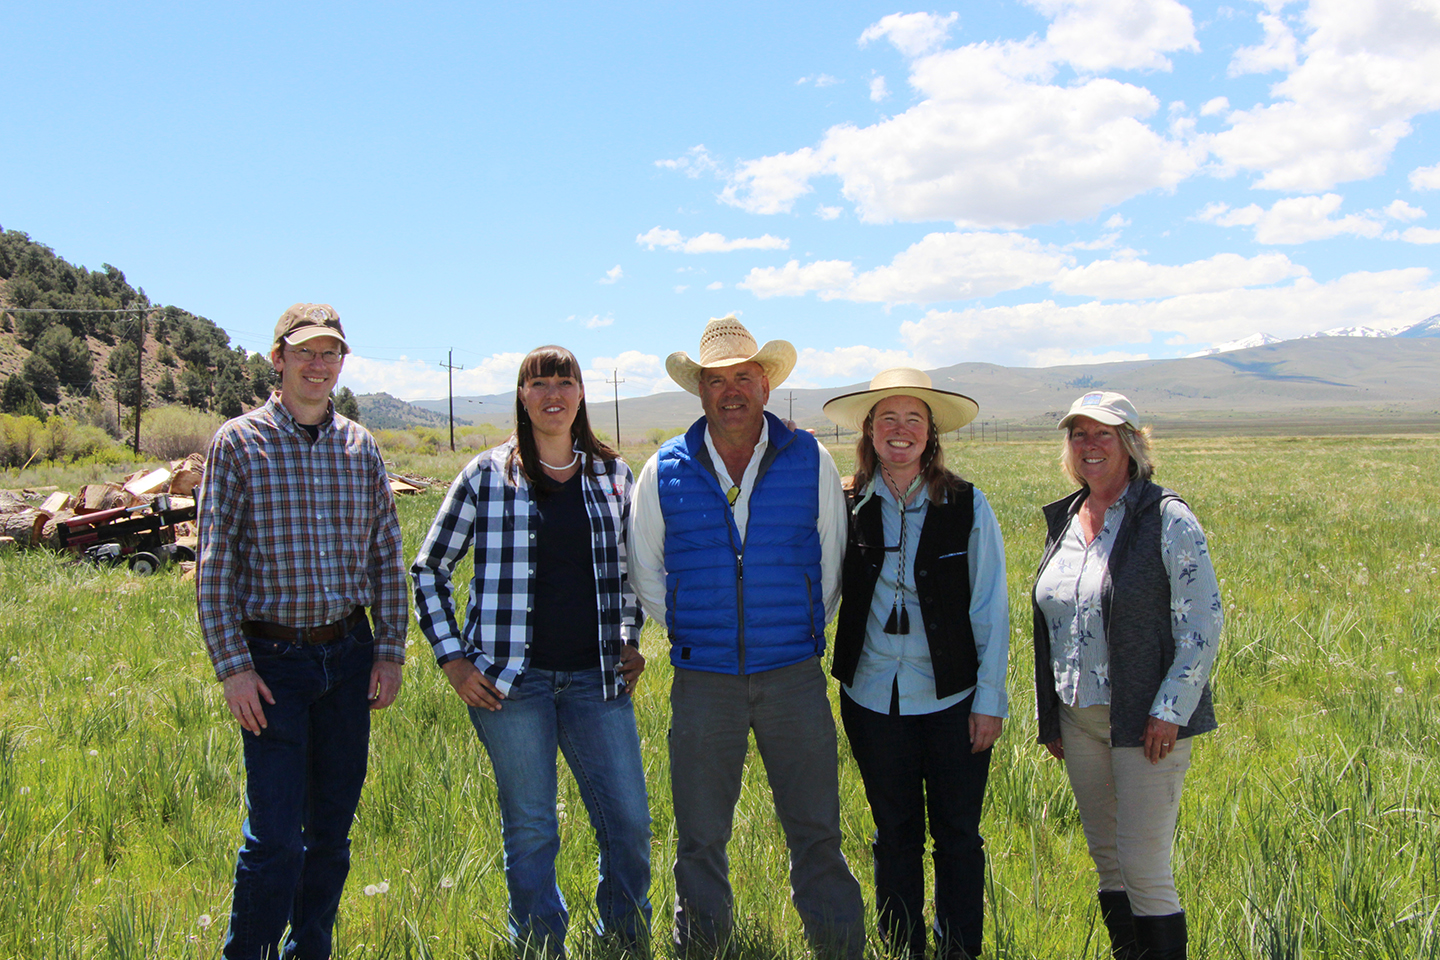 From l to r: NRCS Nevada's District Conservationist Jim Gifford, Soil Conservationist Jessica Gwerder, Sceirine Point Ranch's David Sceirine, and ESLT's Susanna Danner and Kay Ogden pose at the ranch to celebrate the newest conservation easement closure in the Bi-state sage-grouse area.